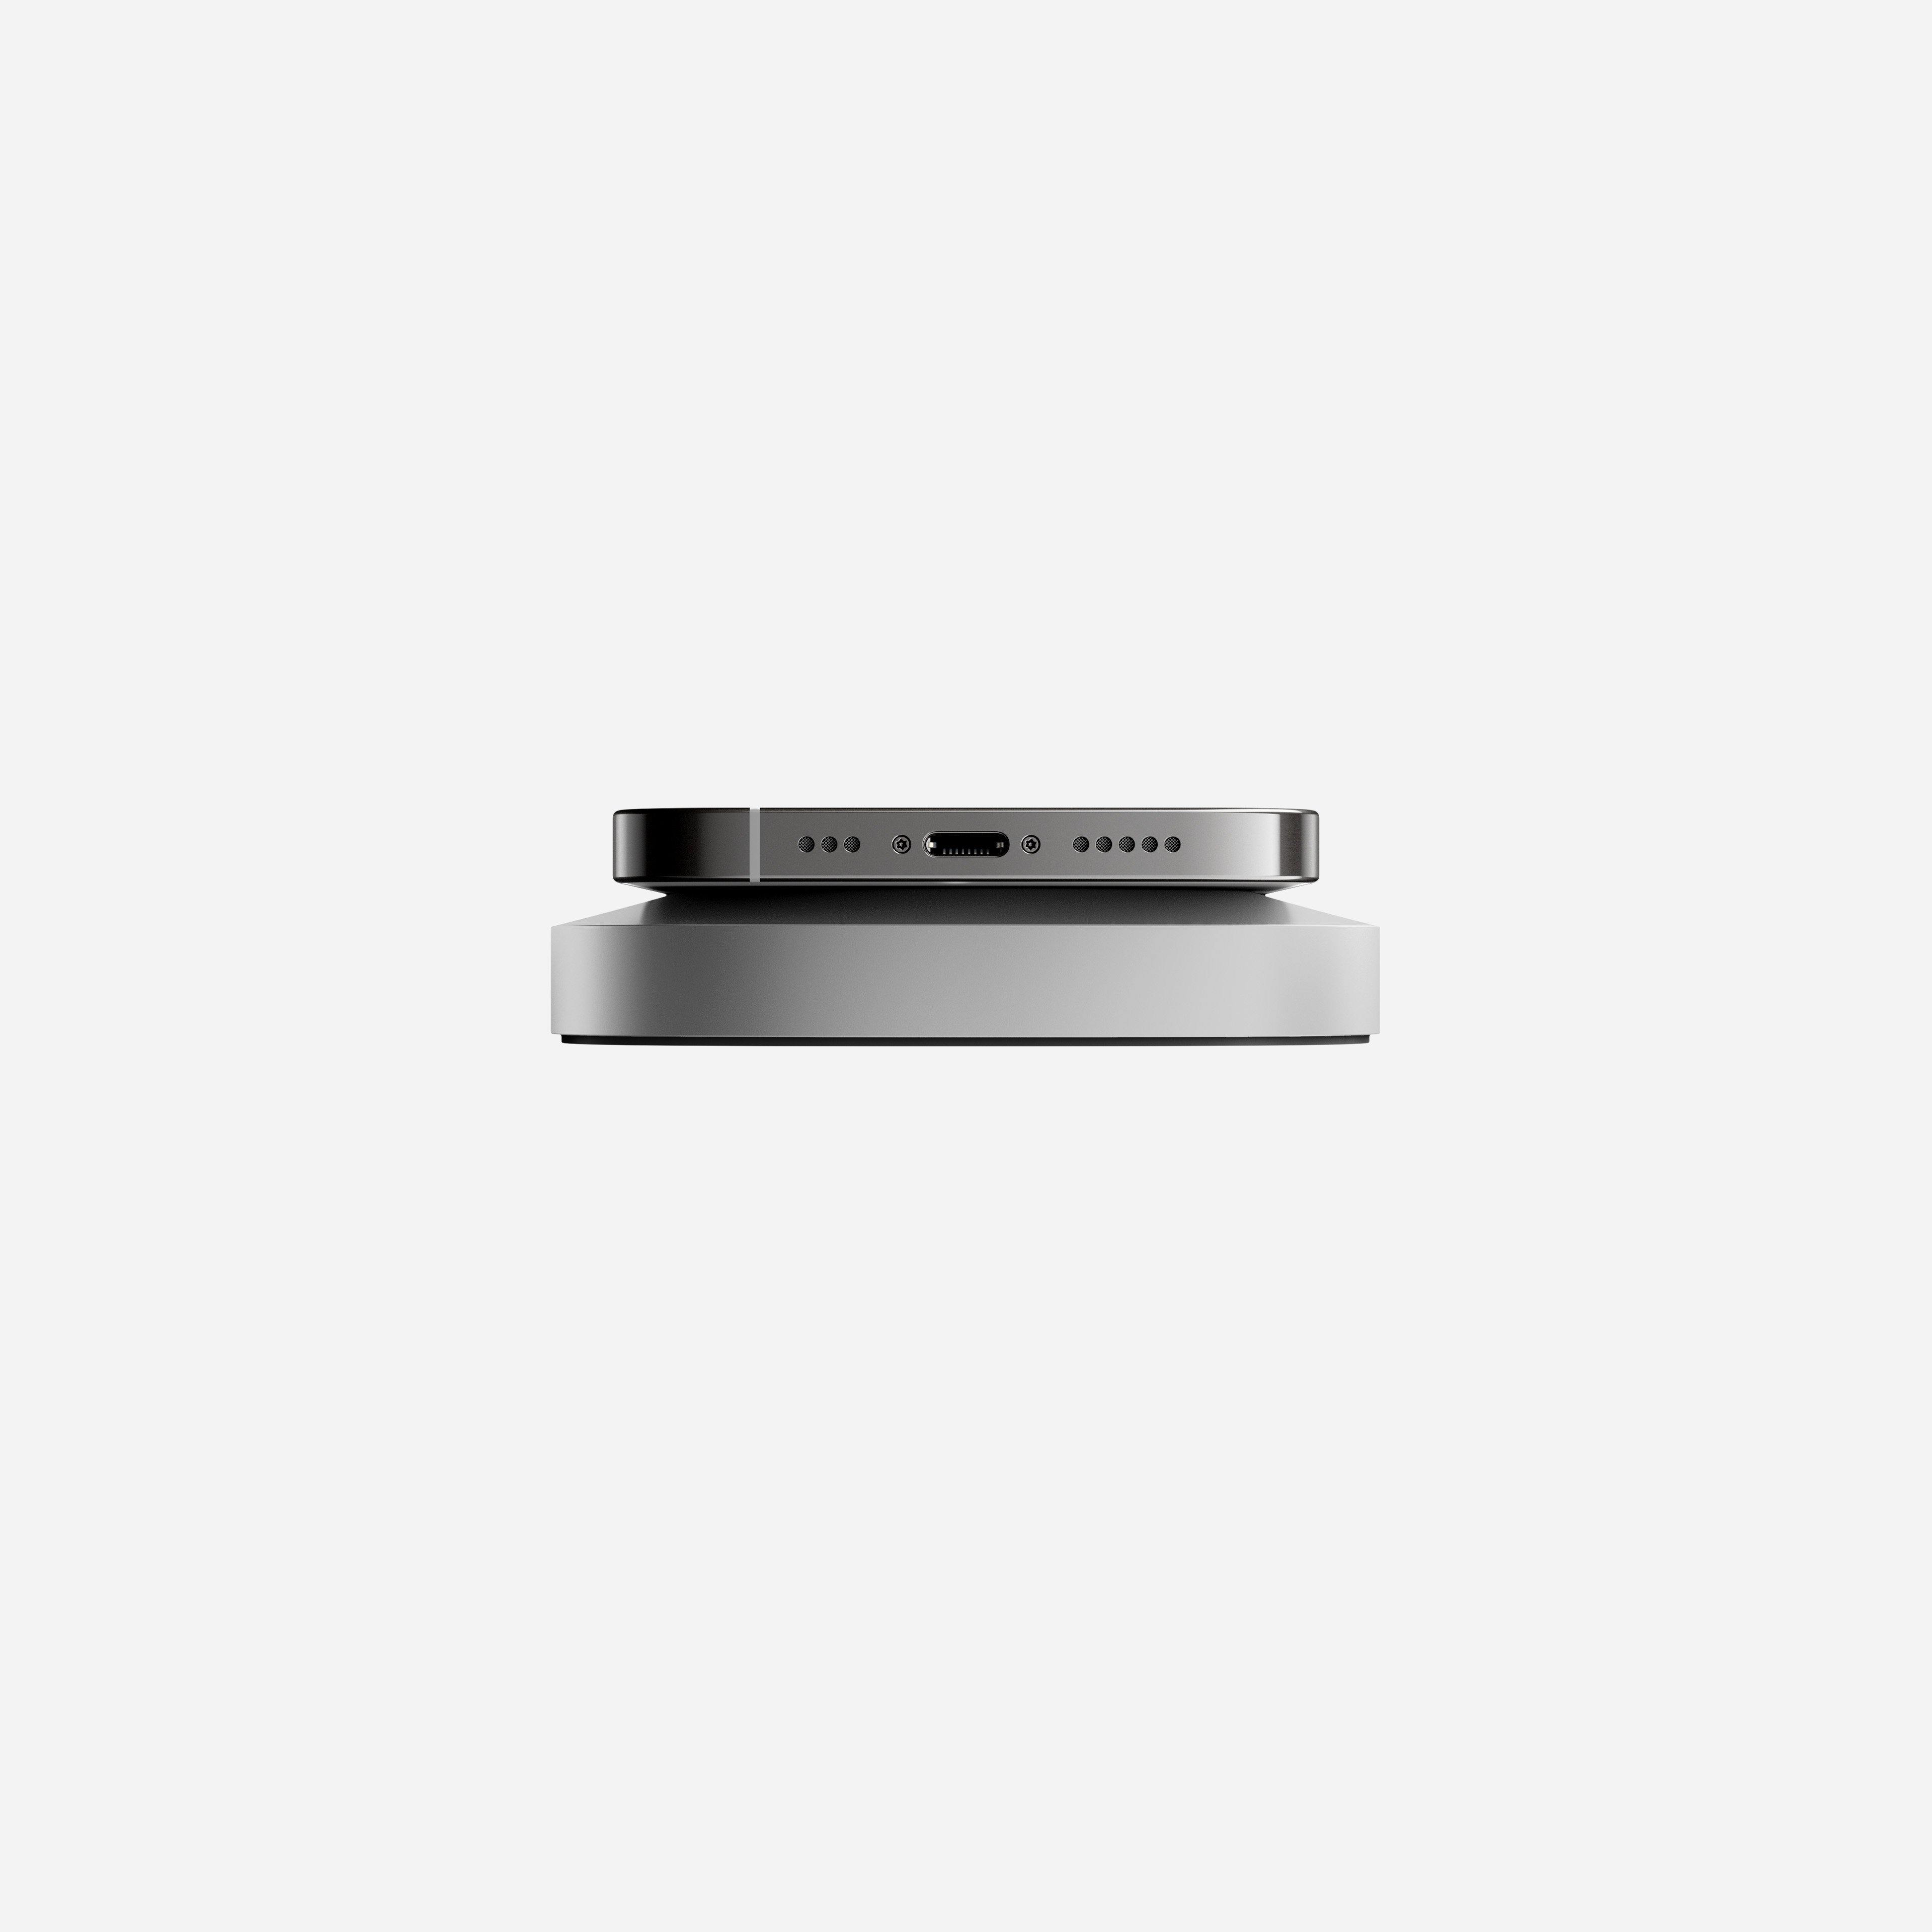 MagSafe Mount for iPhone 12 view from the front   Nomad®